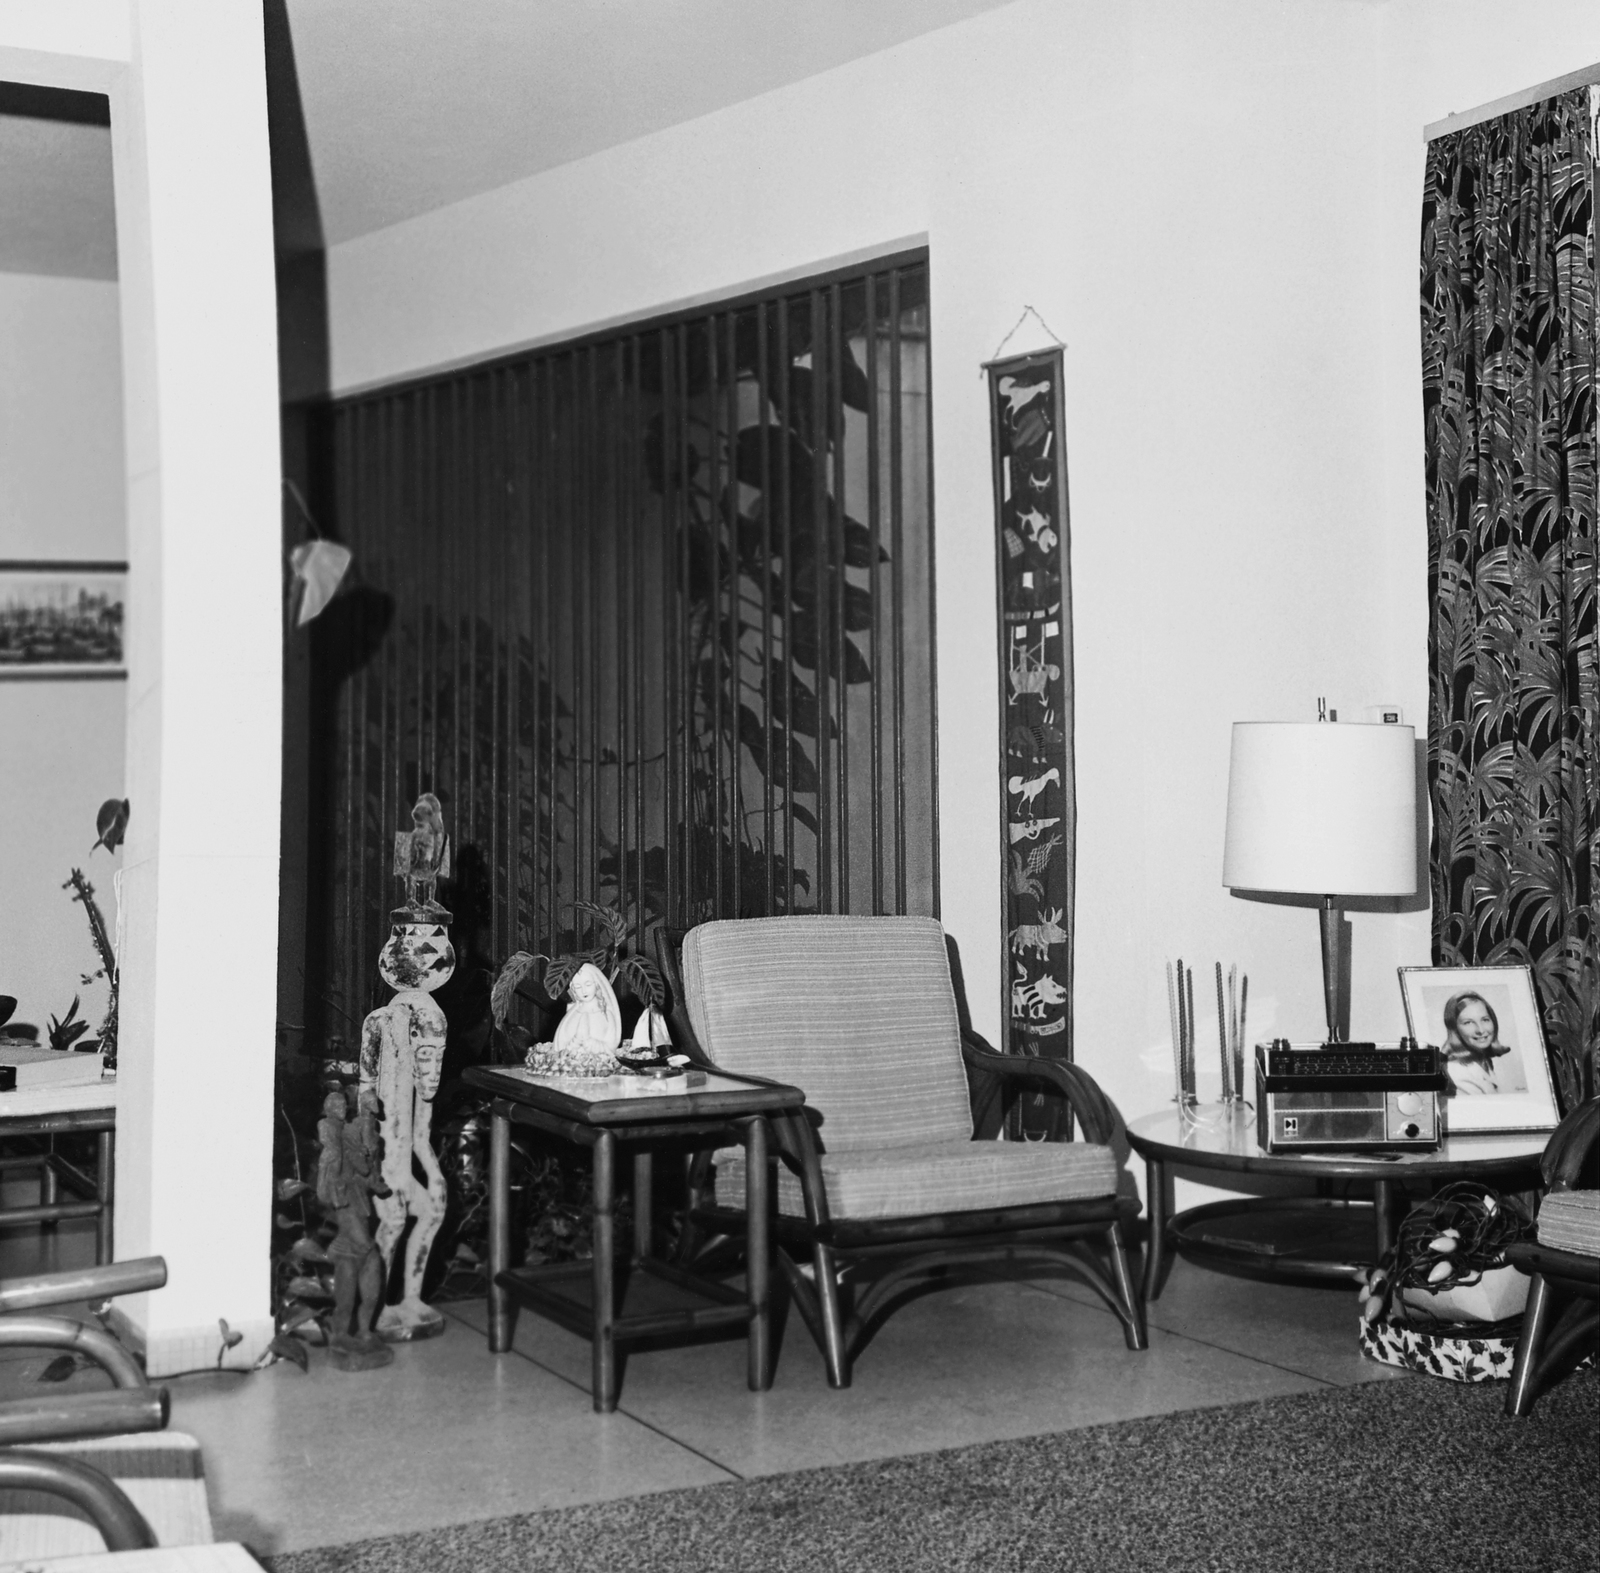 Abidjan - Mid-Level Position Residence - 1965